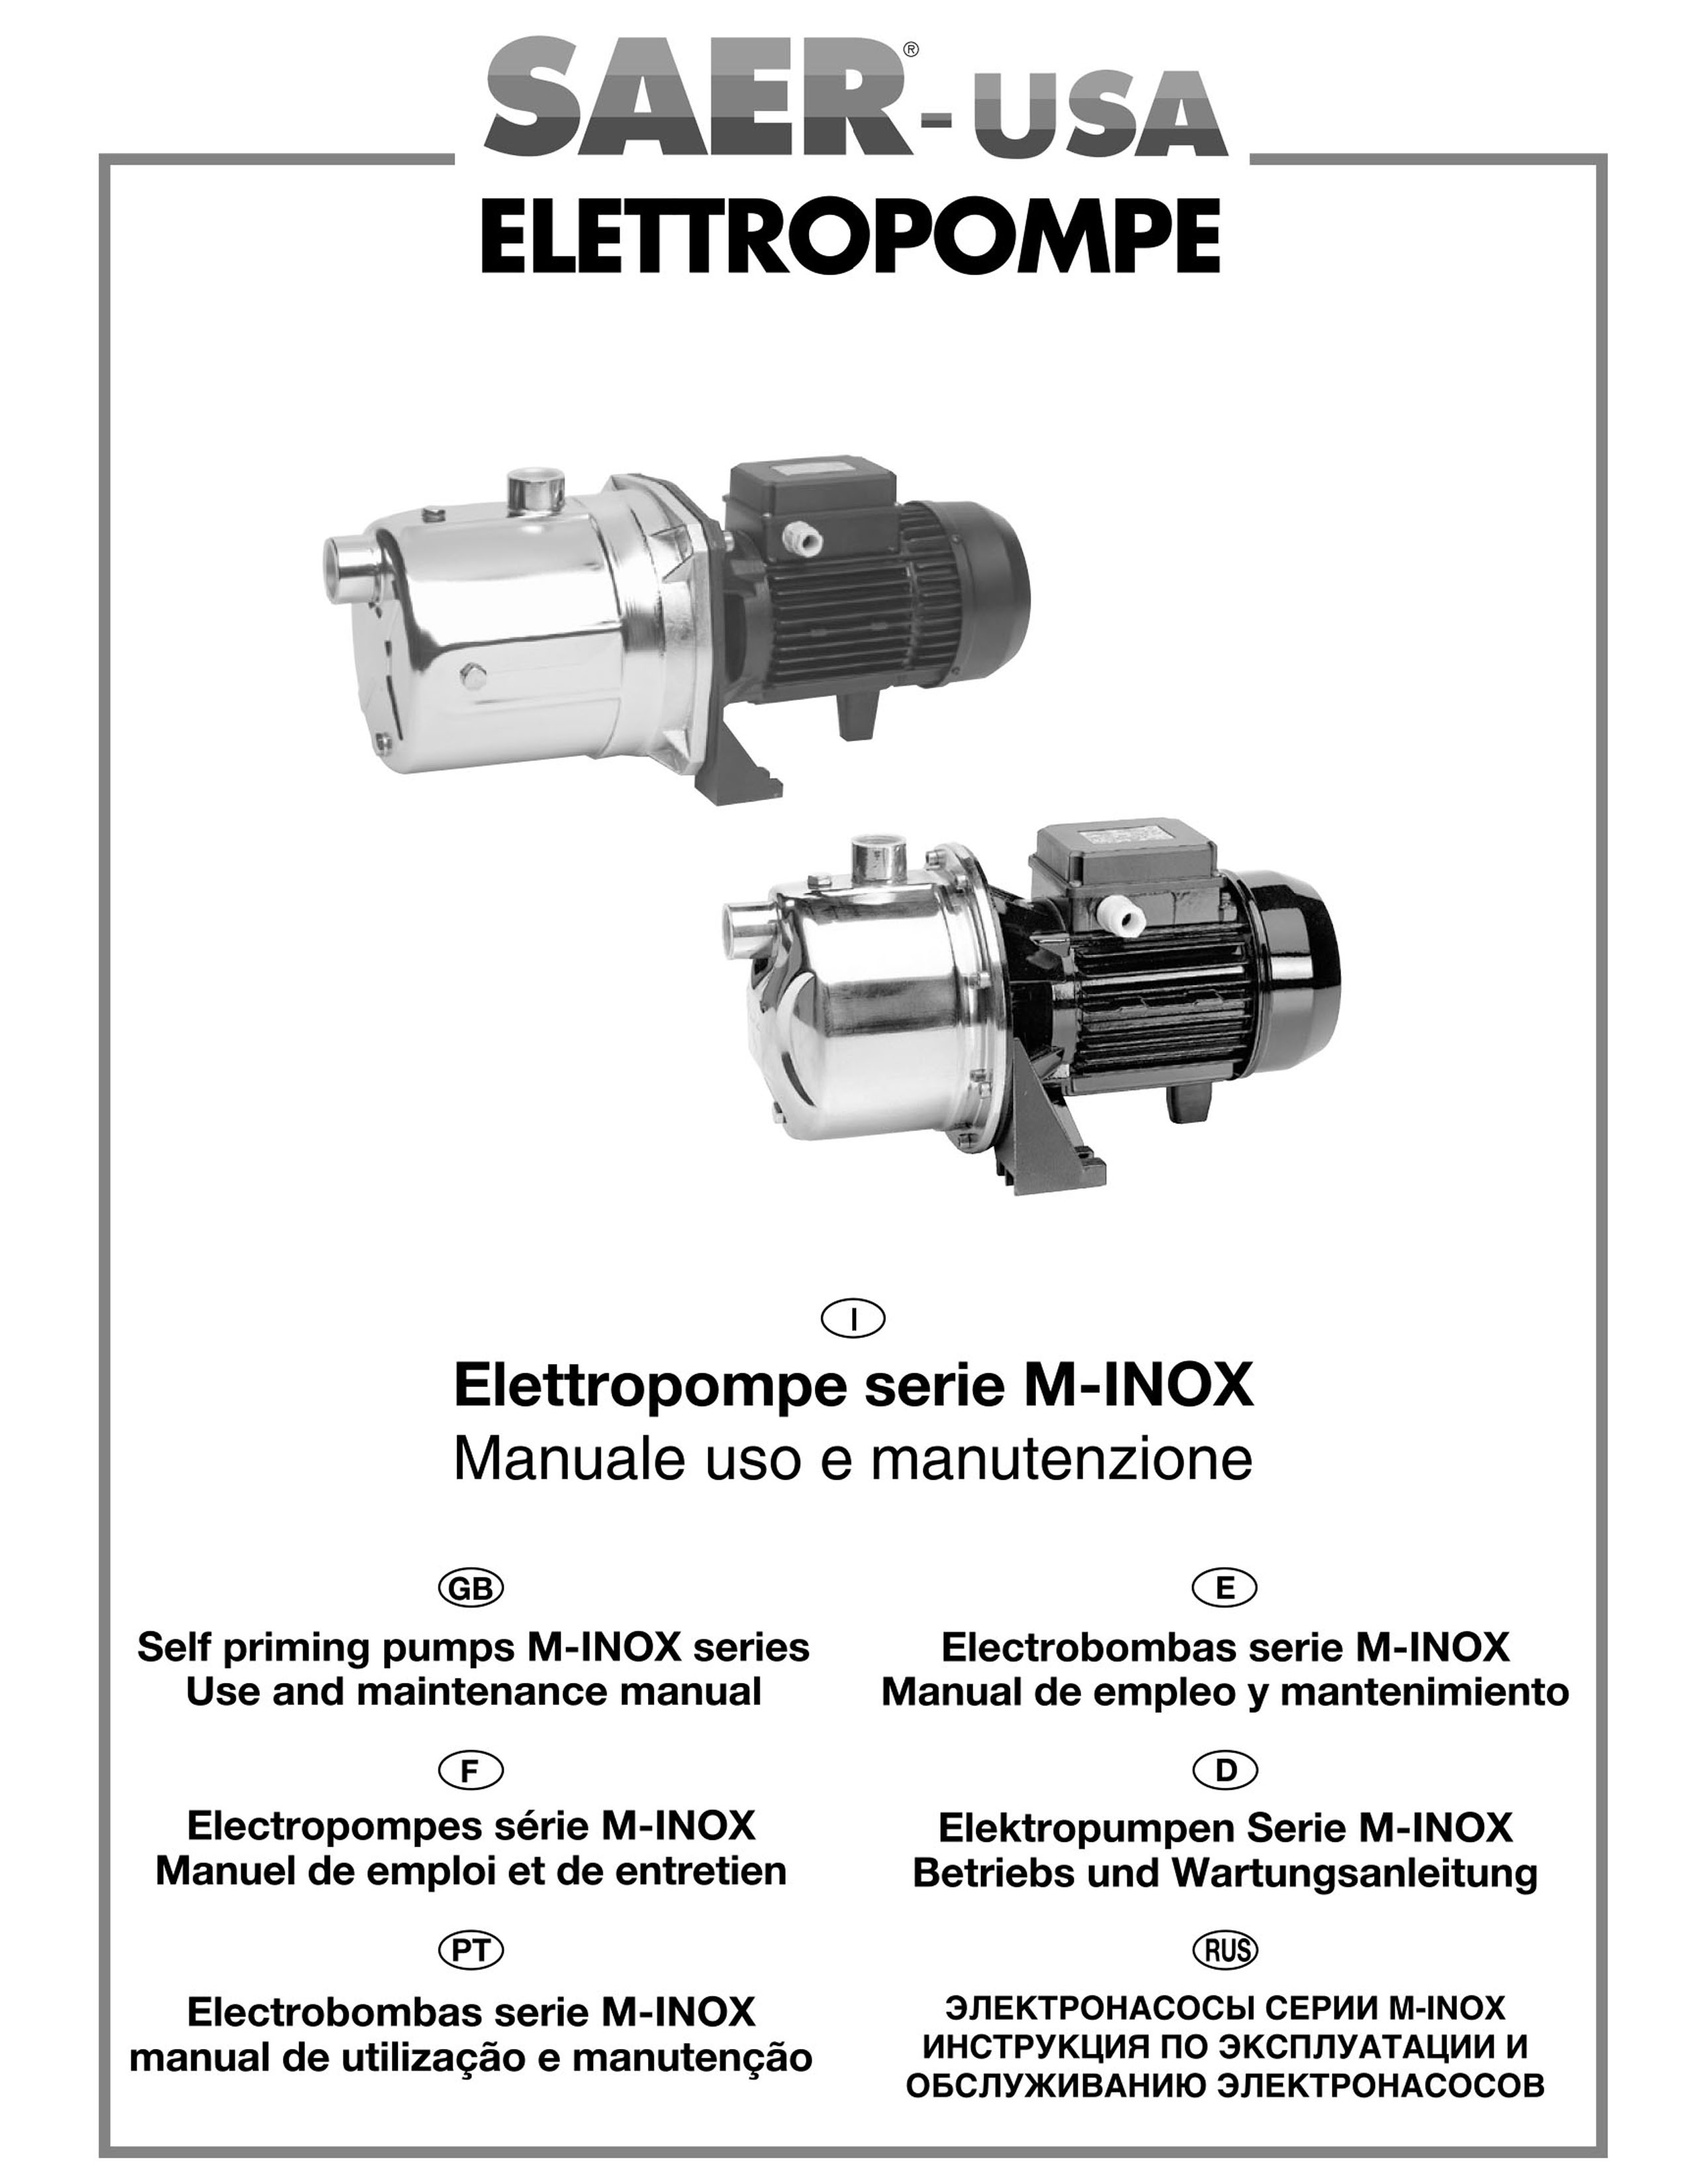 M-jet-inox SAER-USA water domestic pumps- water pumps in usa